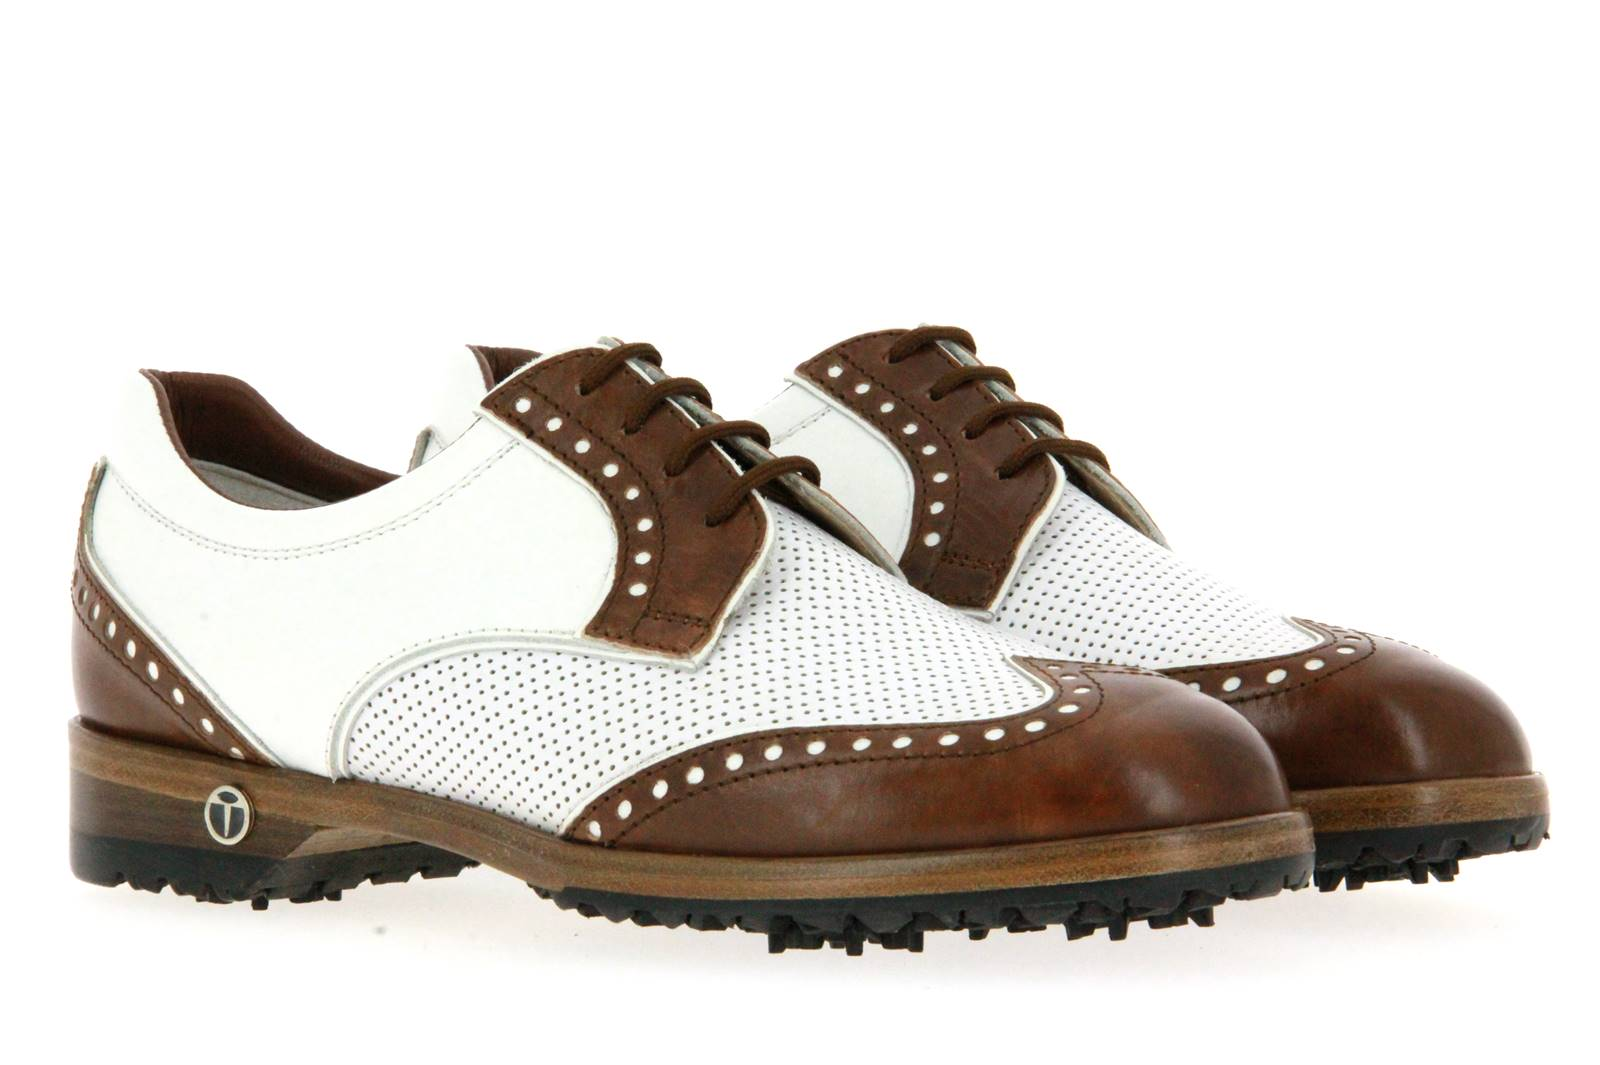 Tee Golf Shoes women's - golf shoe SALLY SAPIN BRANDY BIANCO